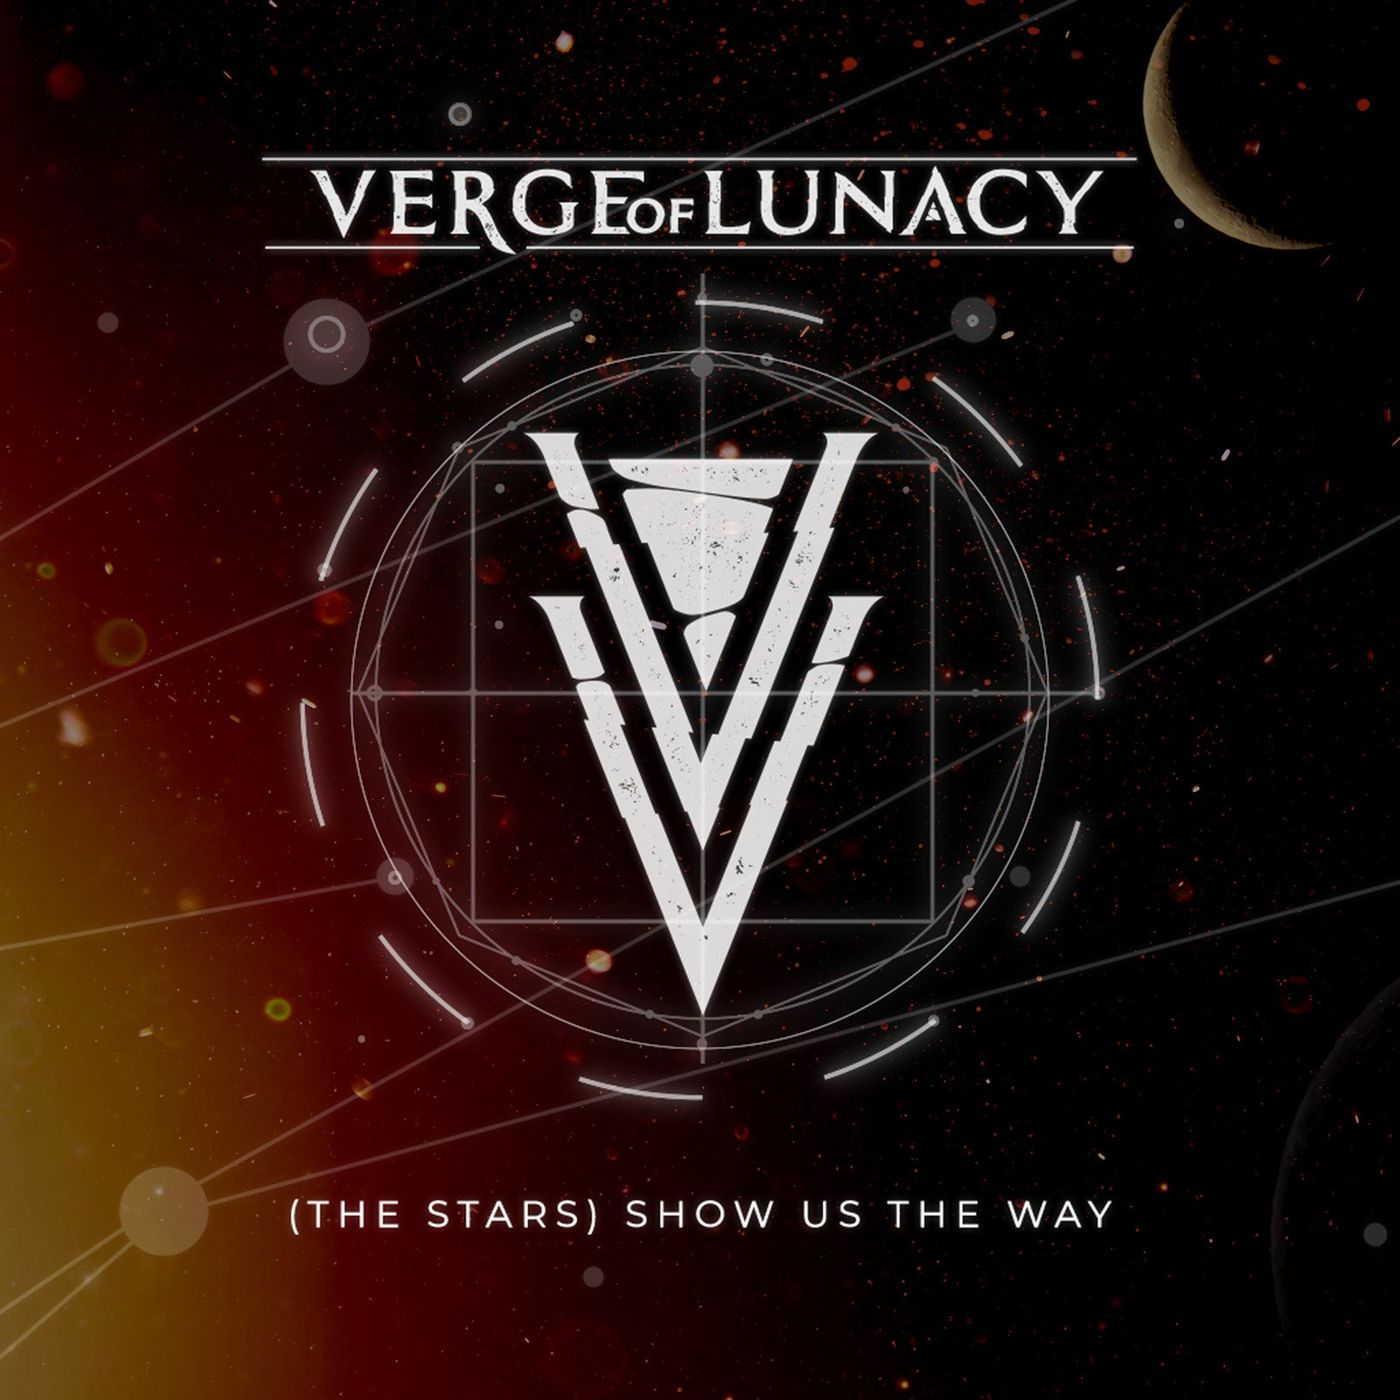 Verge Of Lunacy - (The Stars) Show Us the Way [single] (2021)